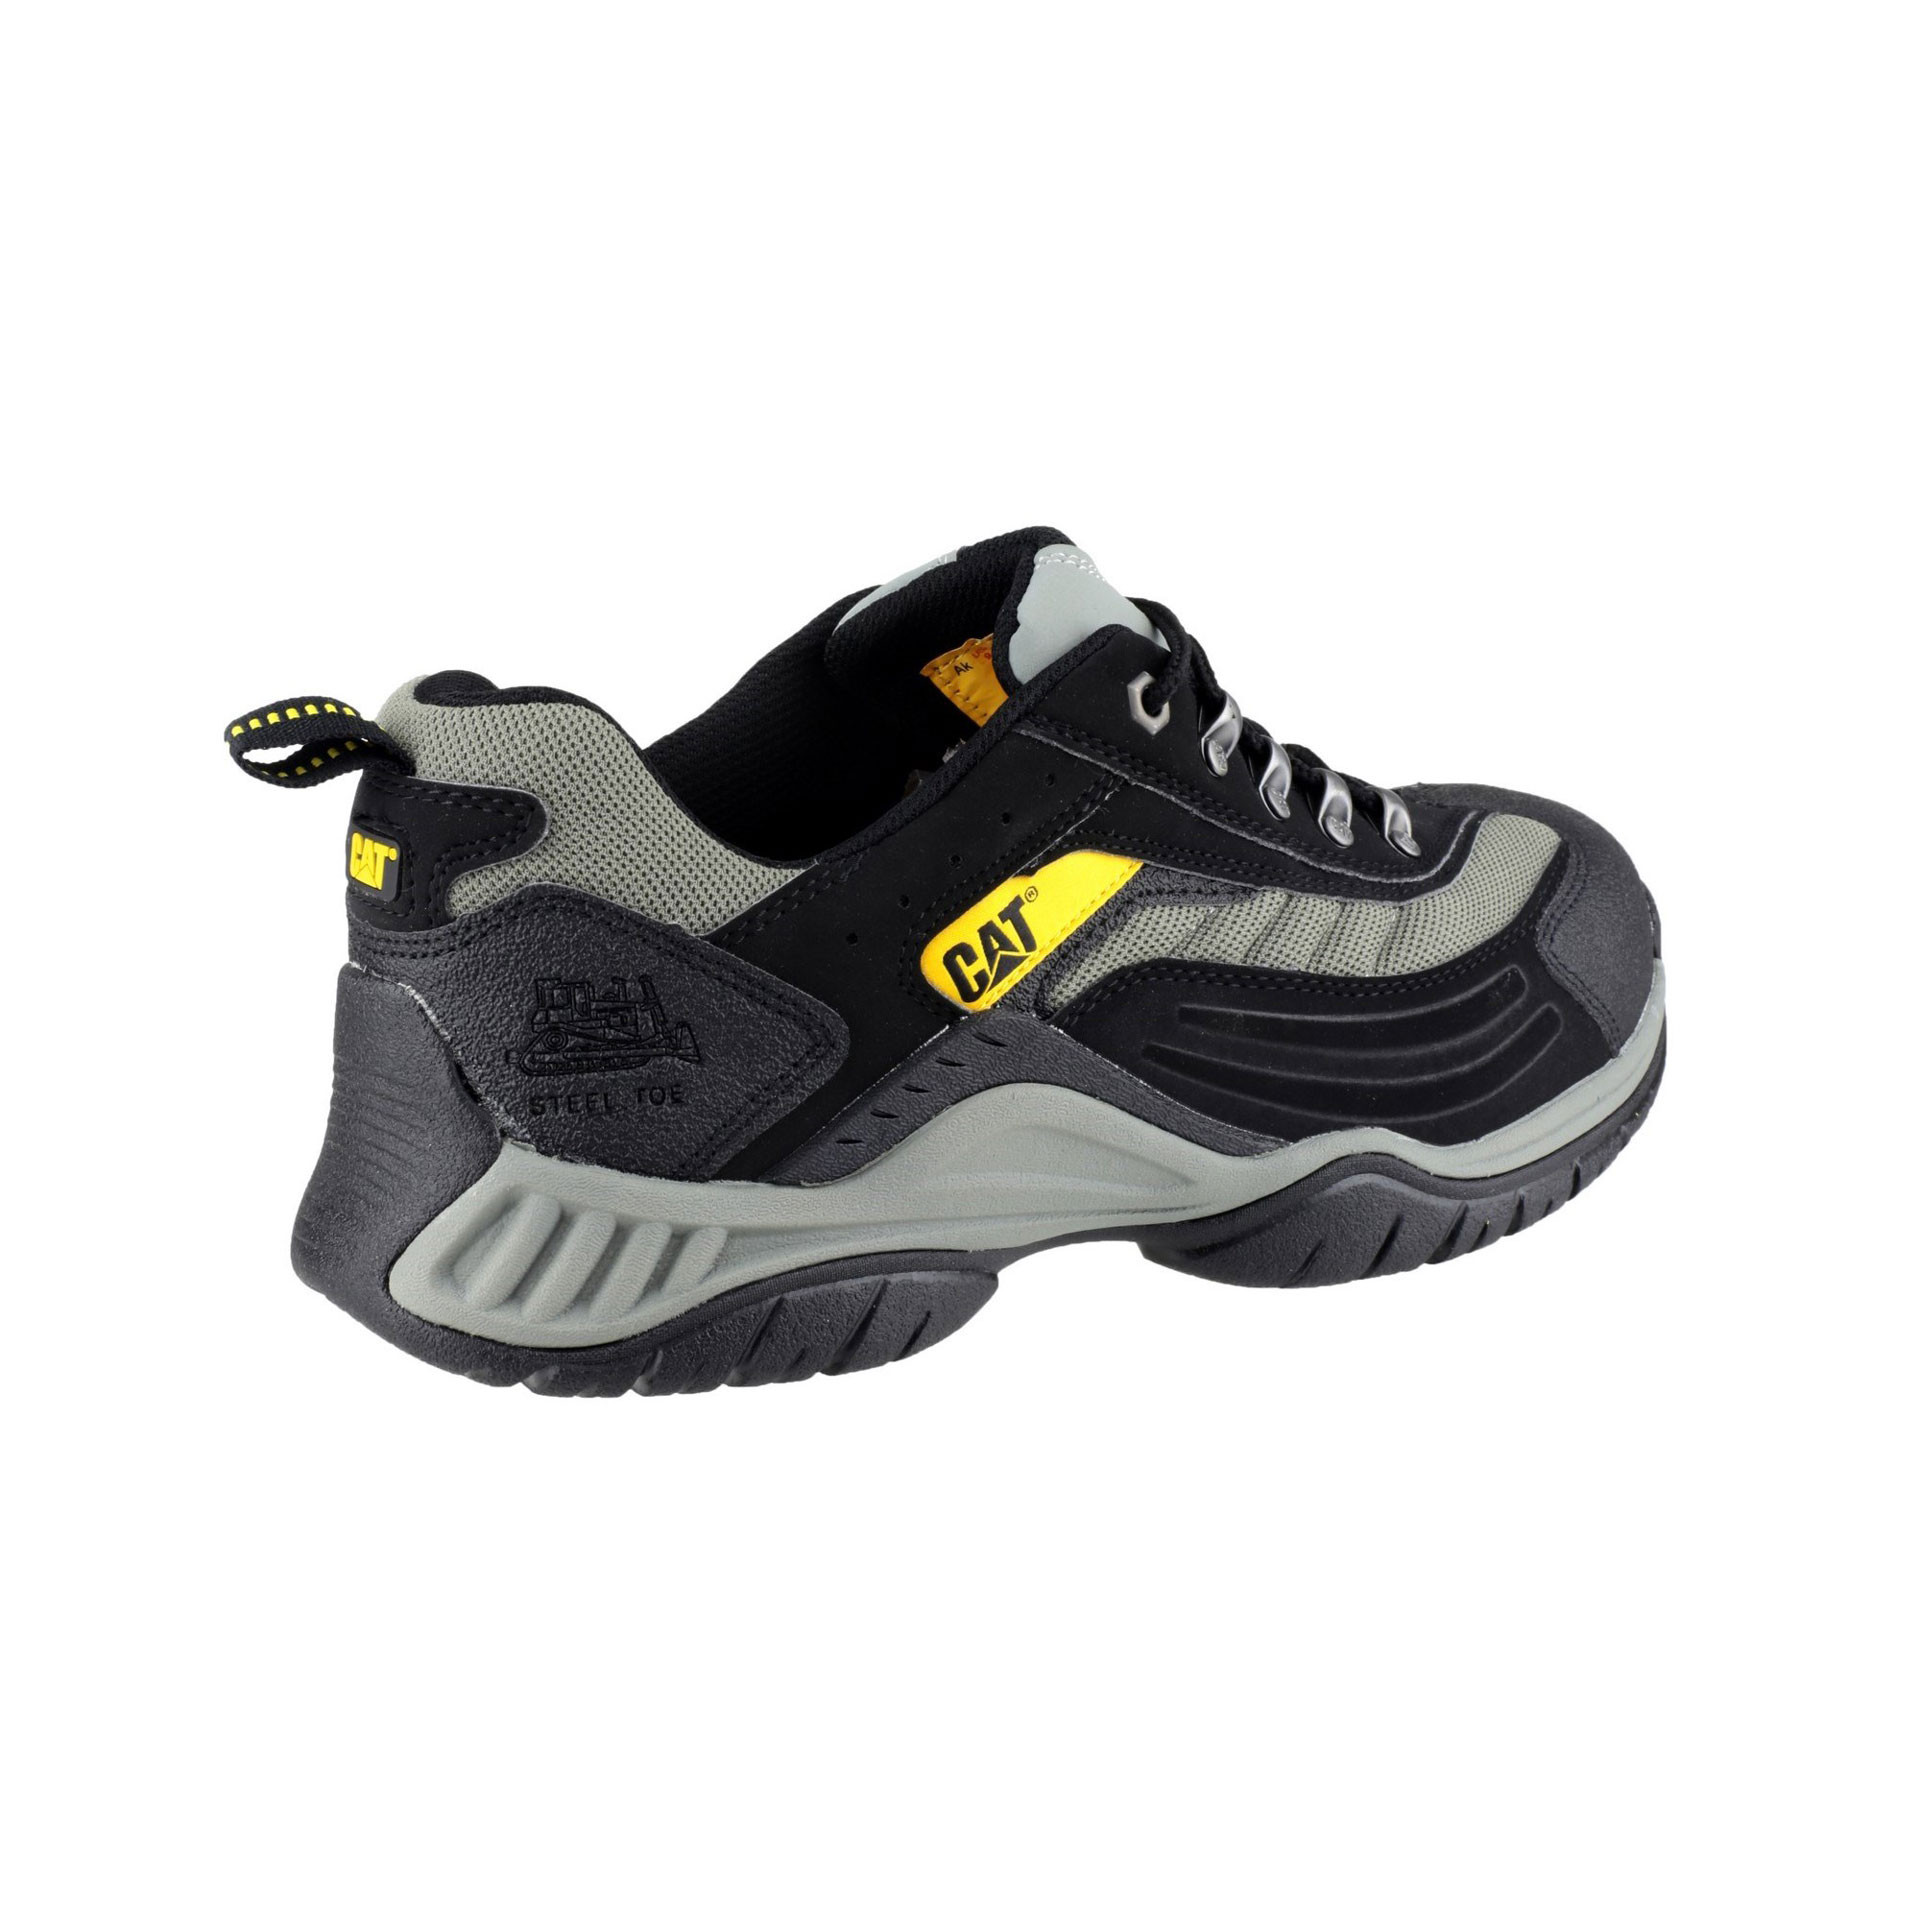 ddc2296c65a Safety shoes CAT Moor, black | CAT - Caterpillar produkcija Lietuvoje